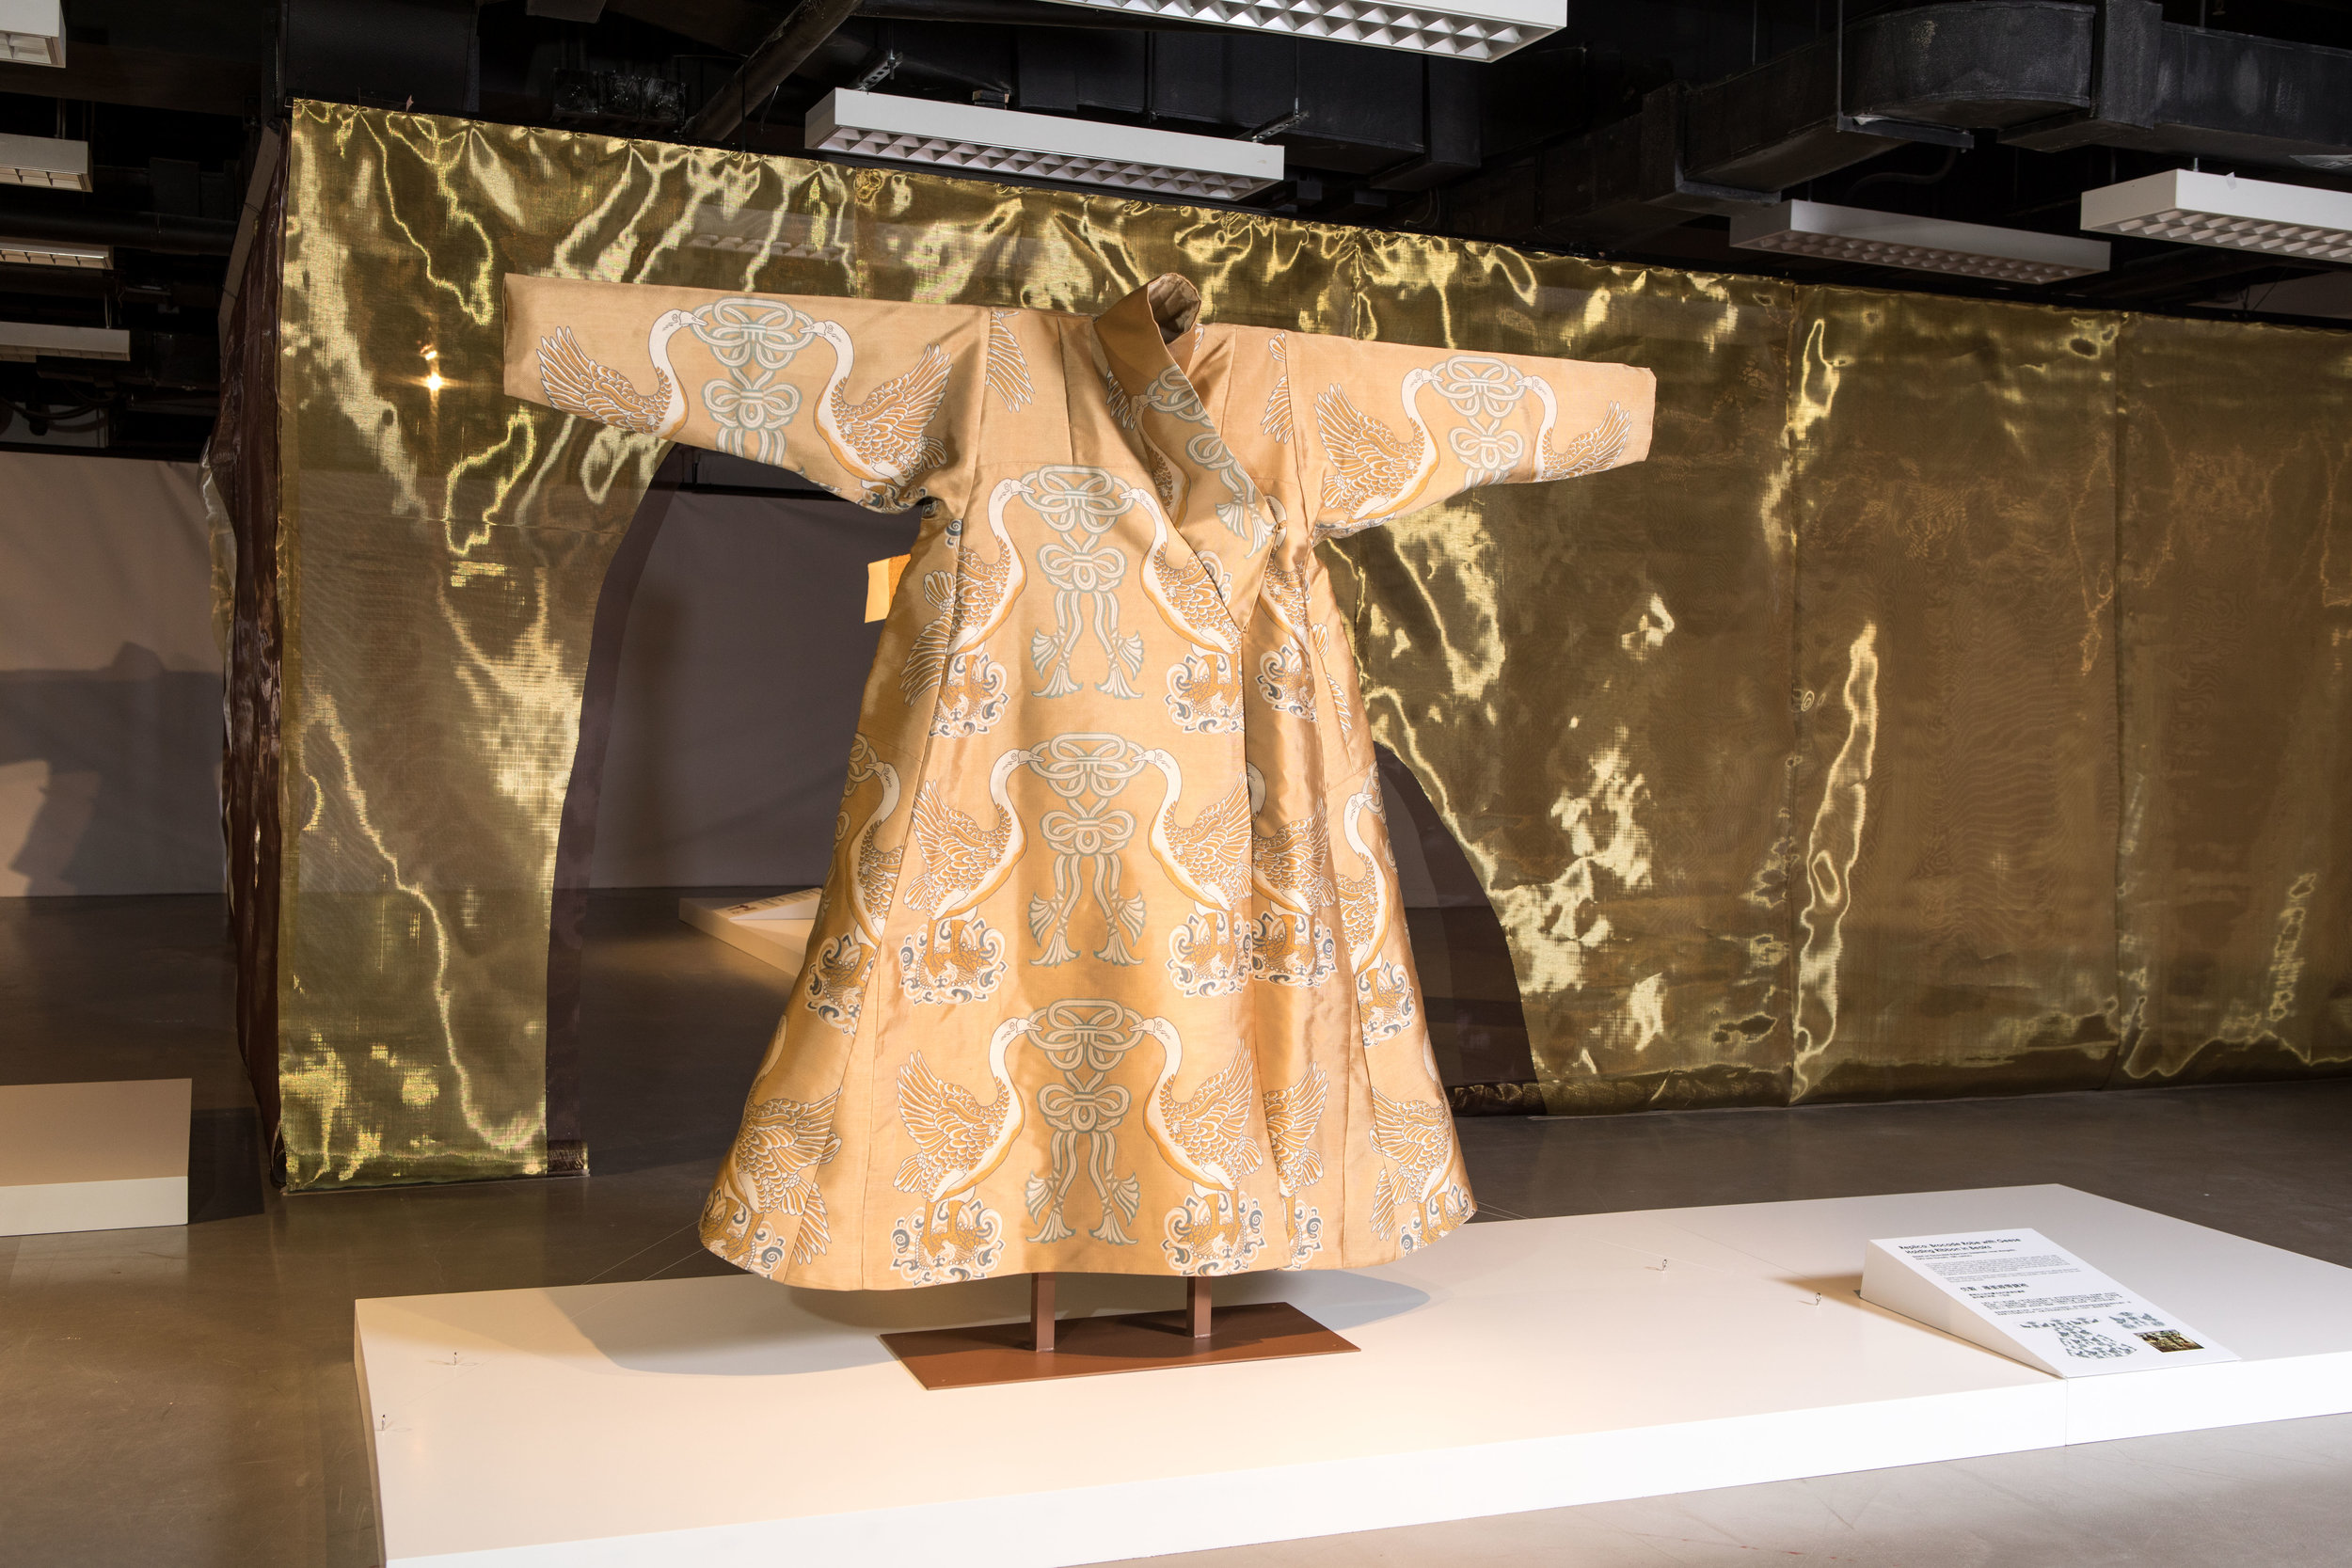 Brocade Robe with Geese Holding Ribbon in Beaks, a replica of an excavated robe from Daiqintala, Inner Mongolia, Early Liao Dynasty, 10th Century